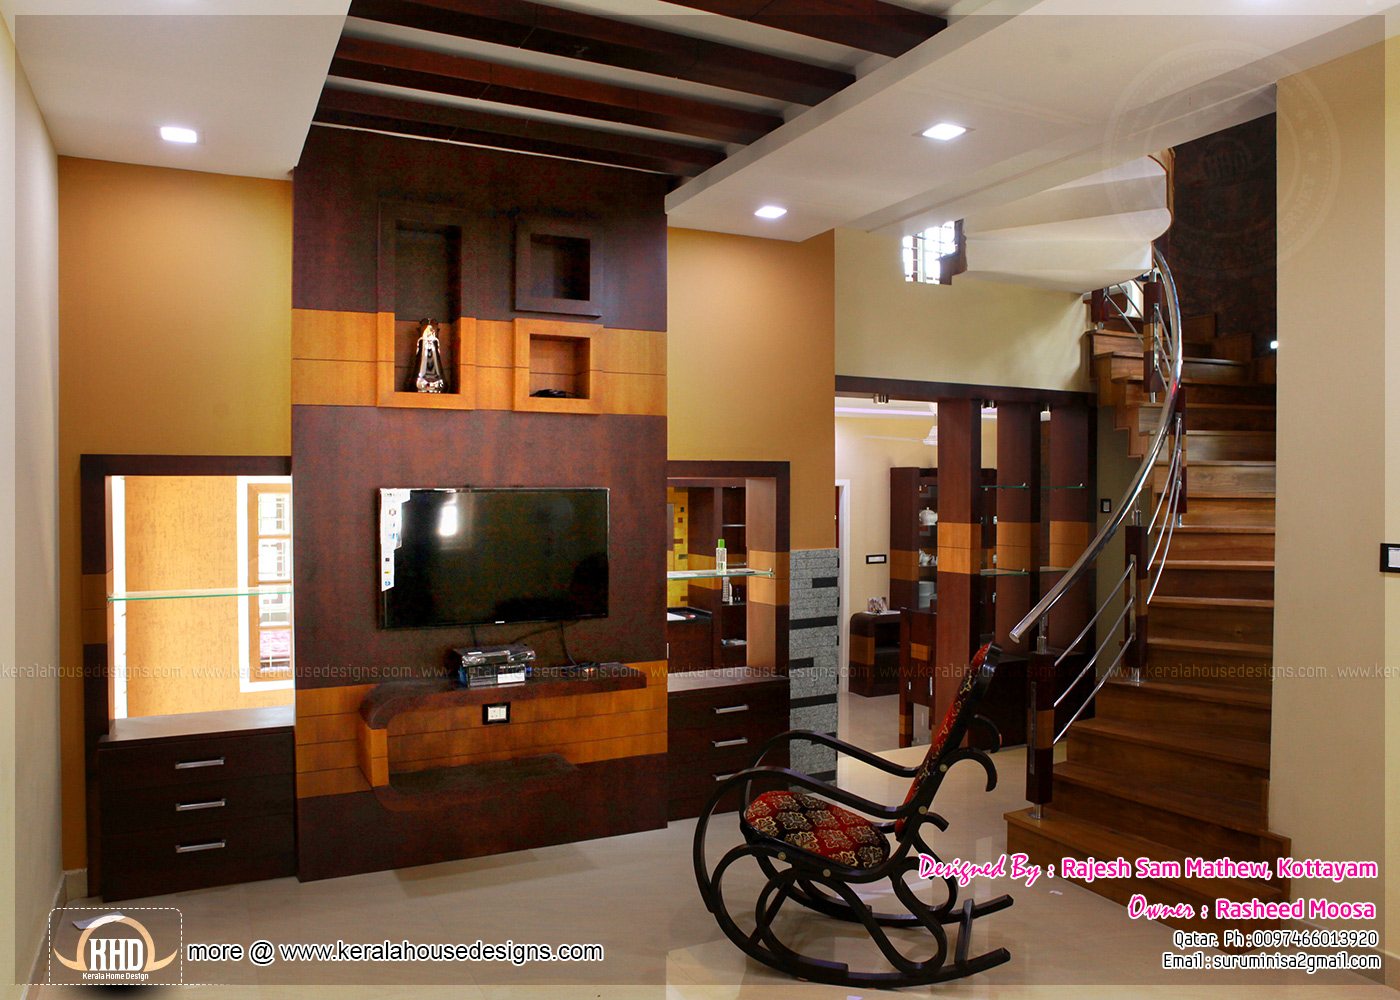 Kerala interior design with photos kerala home design for Room design site